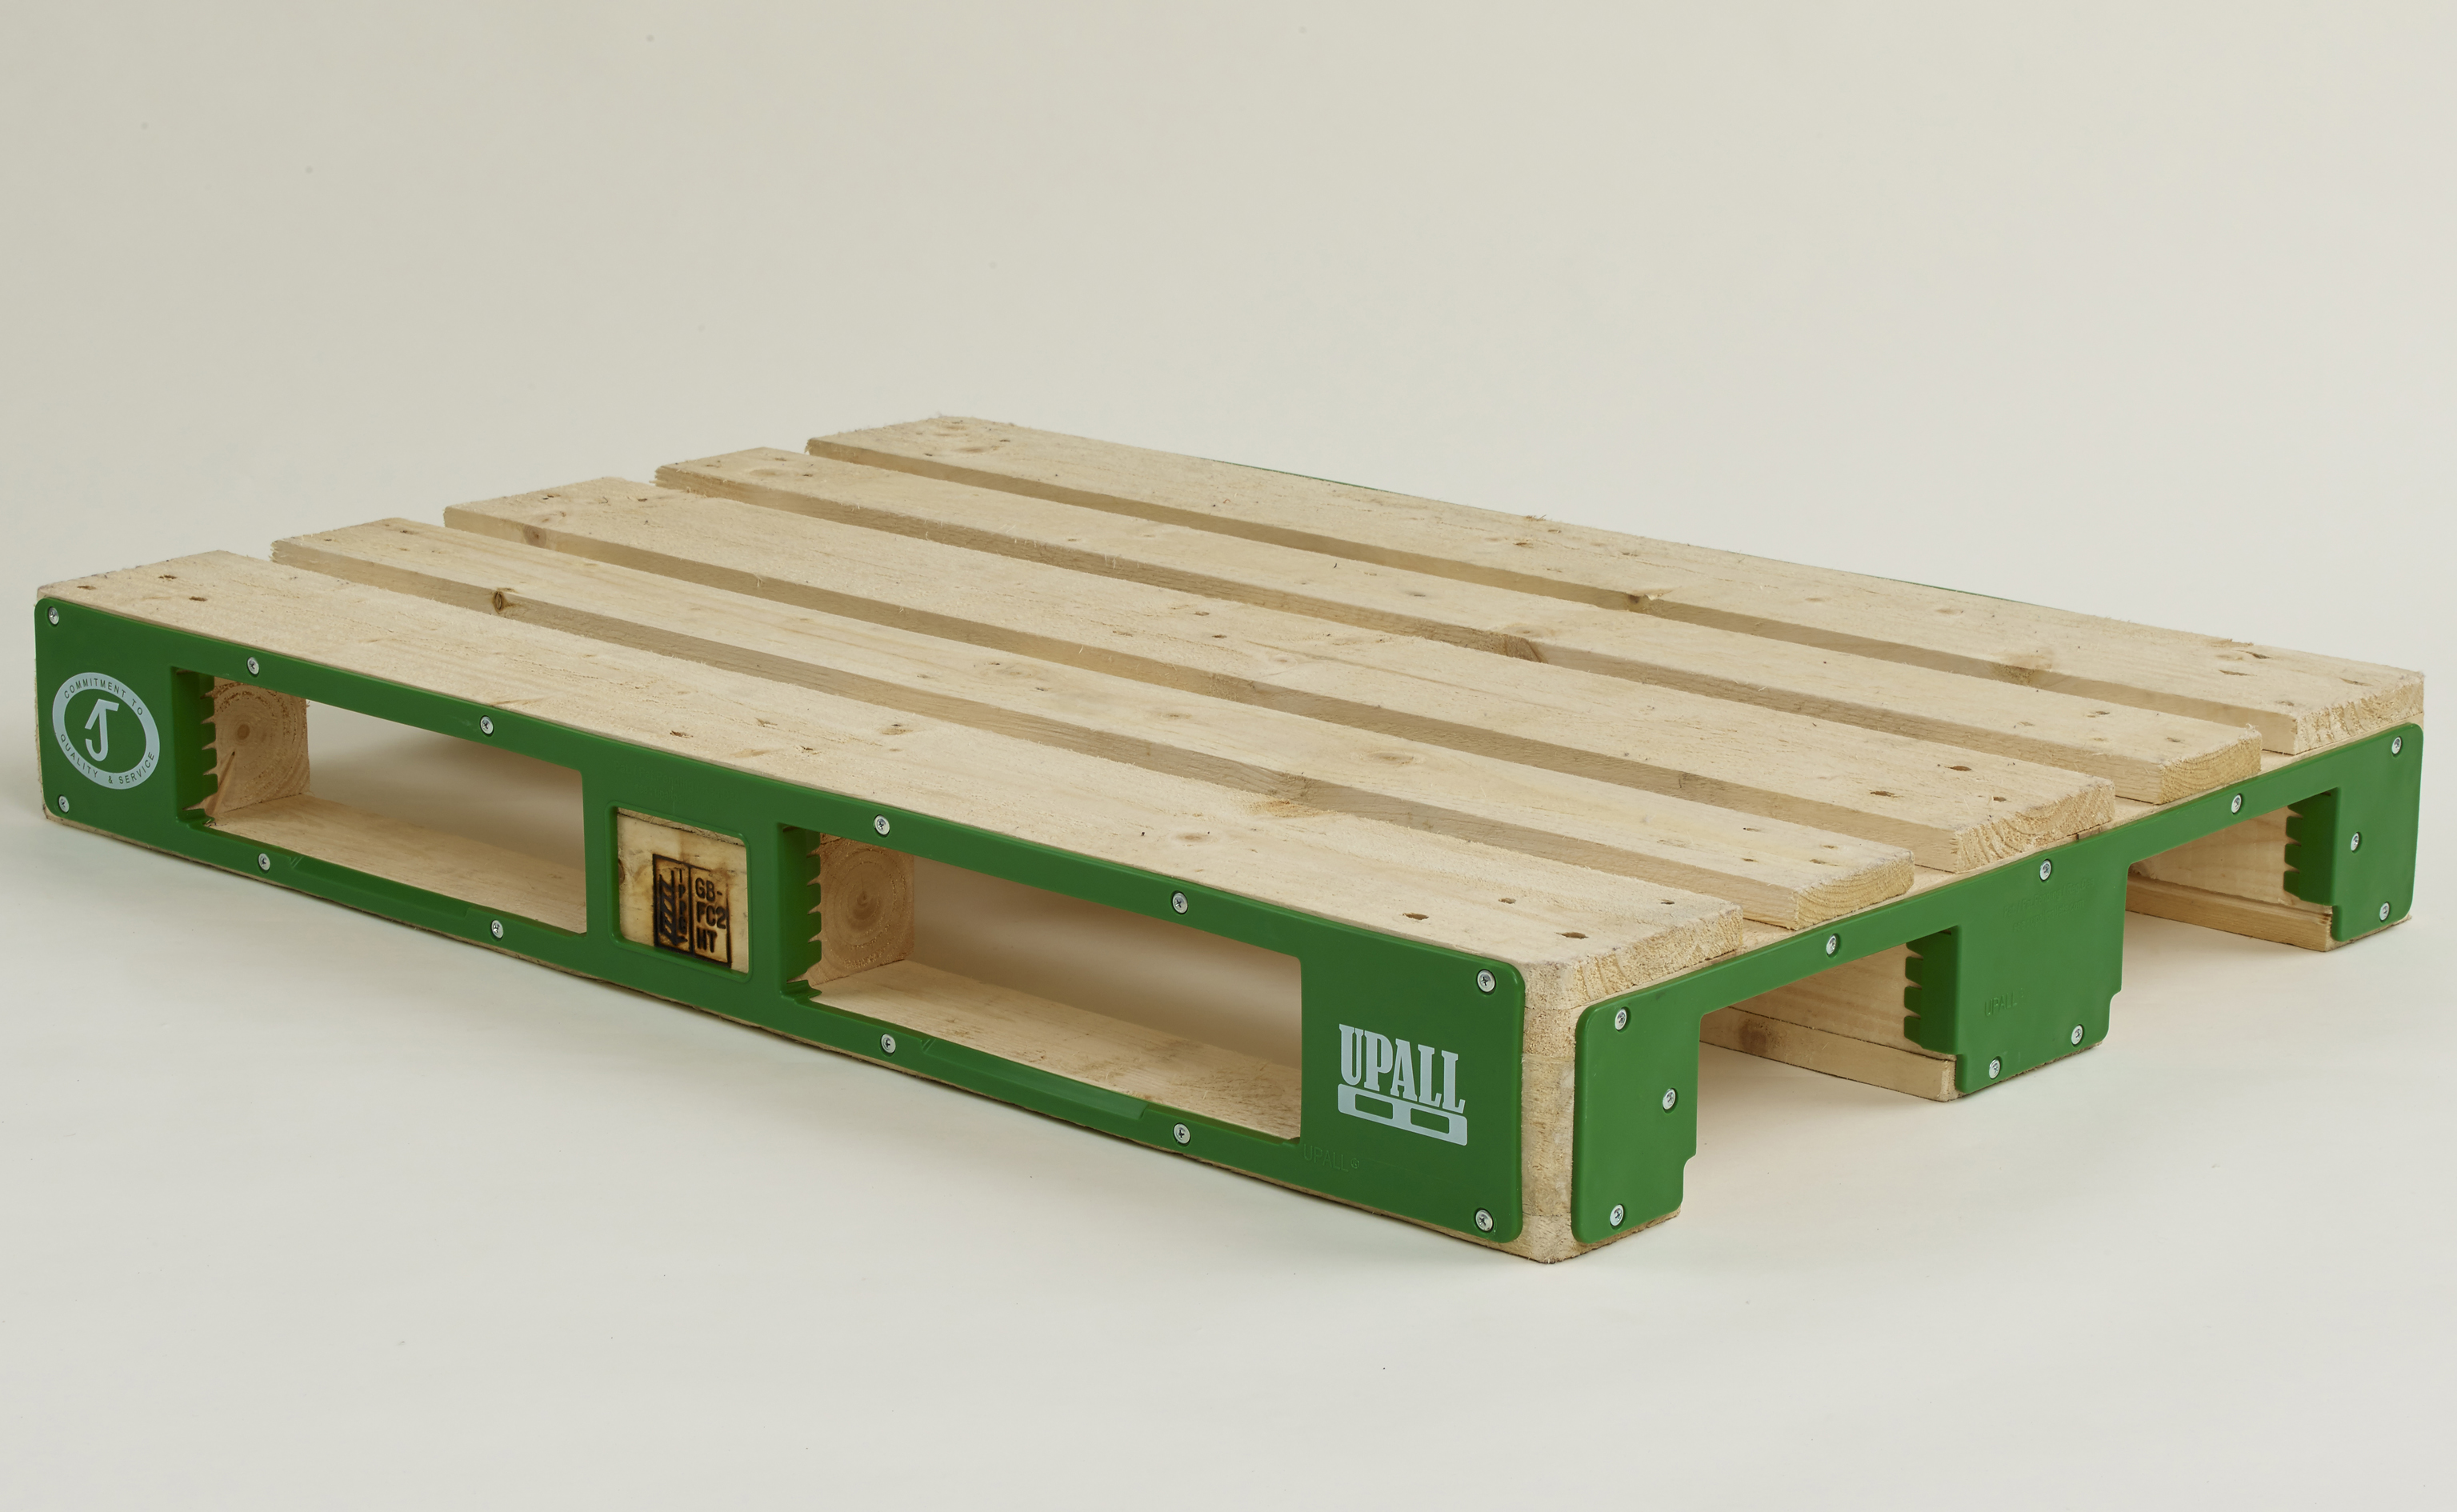 UPALL Pallet Protector on Euro Pallet